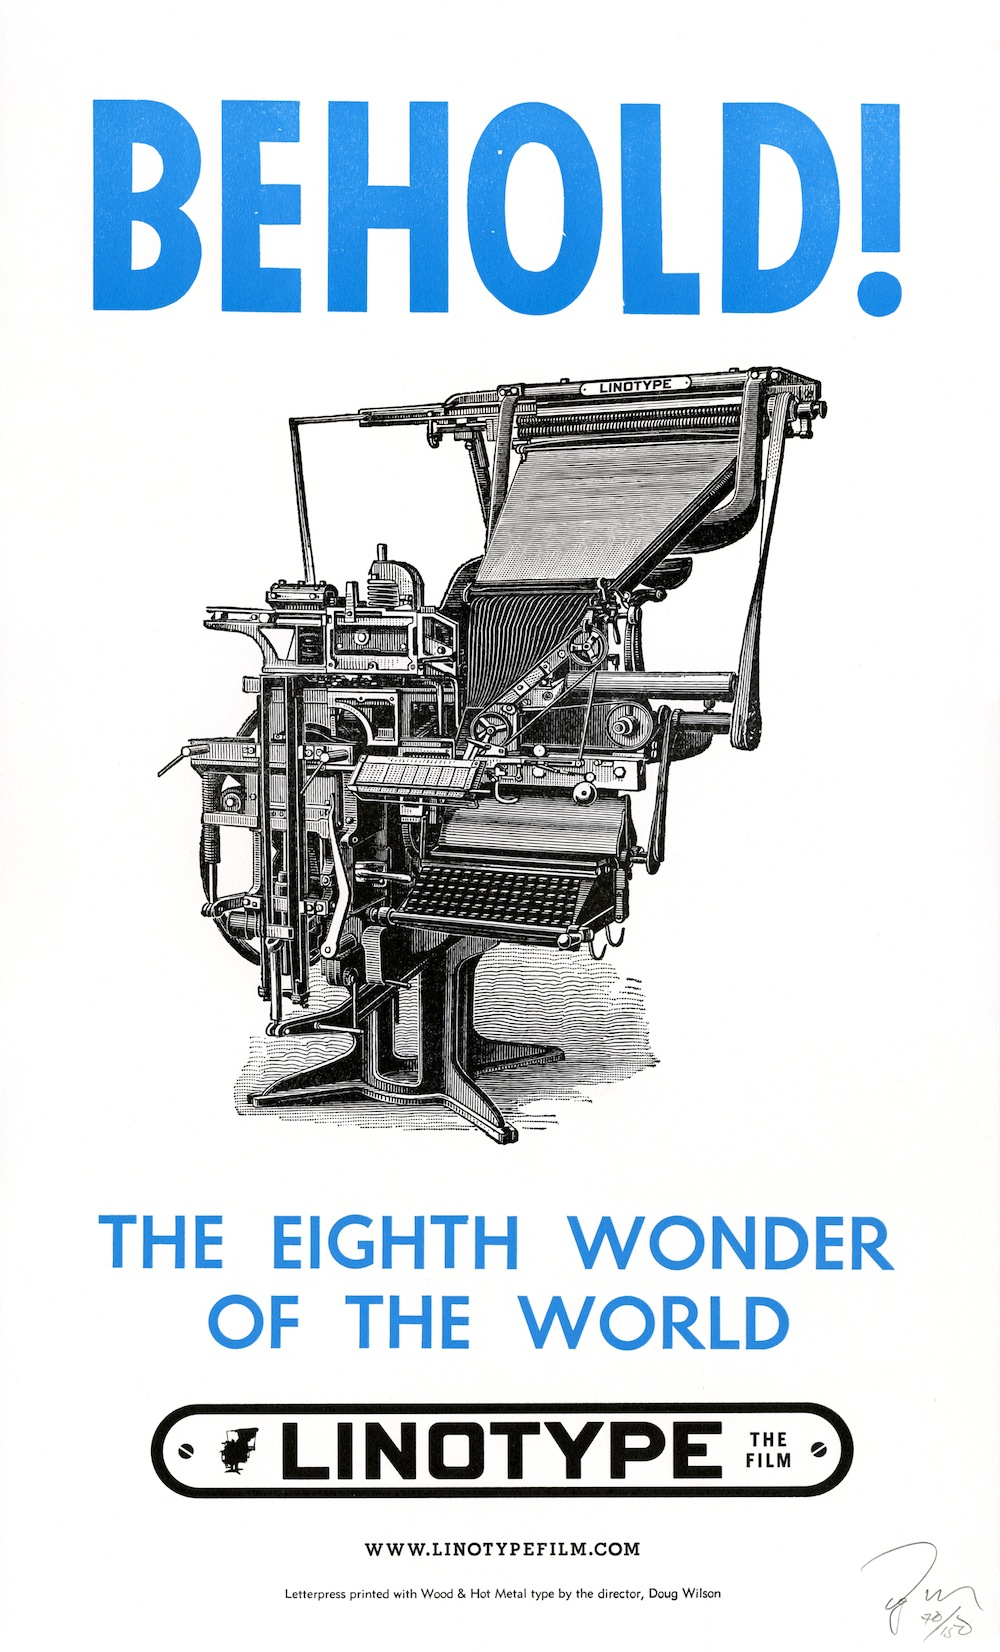 Official Letterpressed Poster For Linotype The Film By Doug Wilson 2012